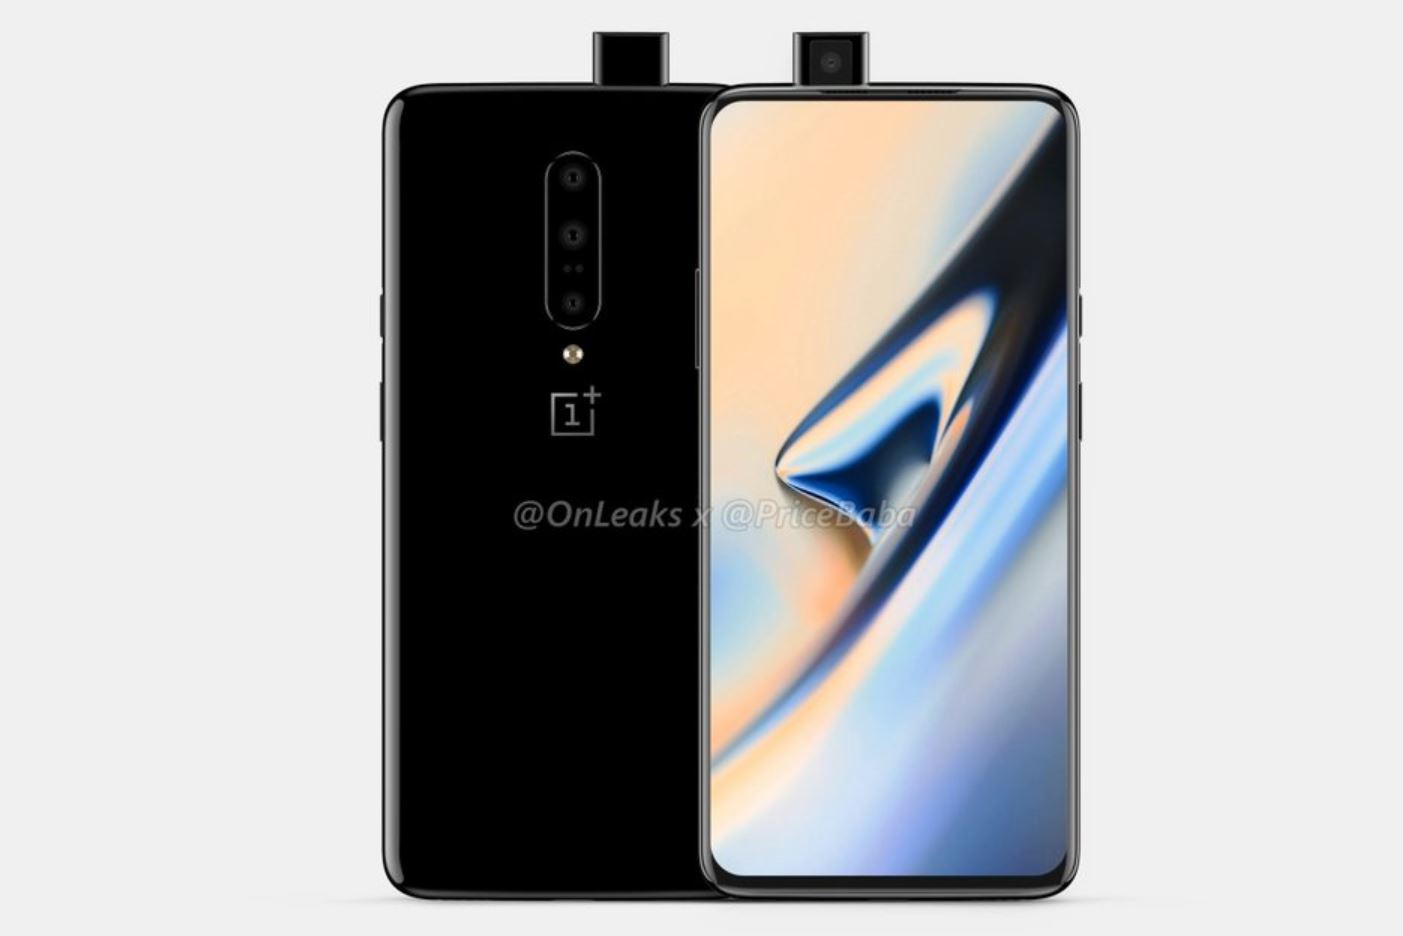 OnePlus 7 release date seemingly confirmed as next month